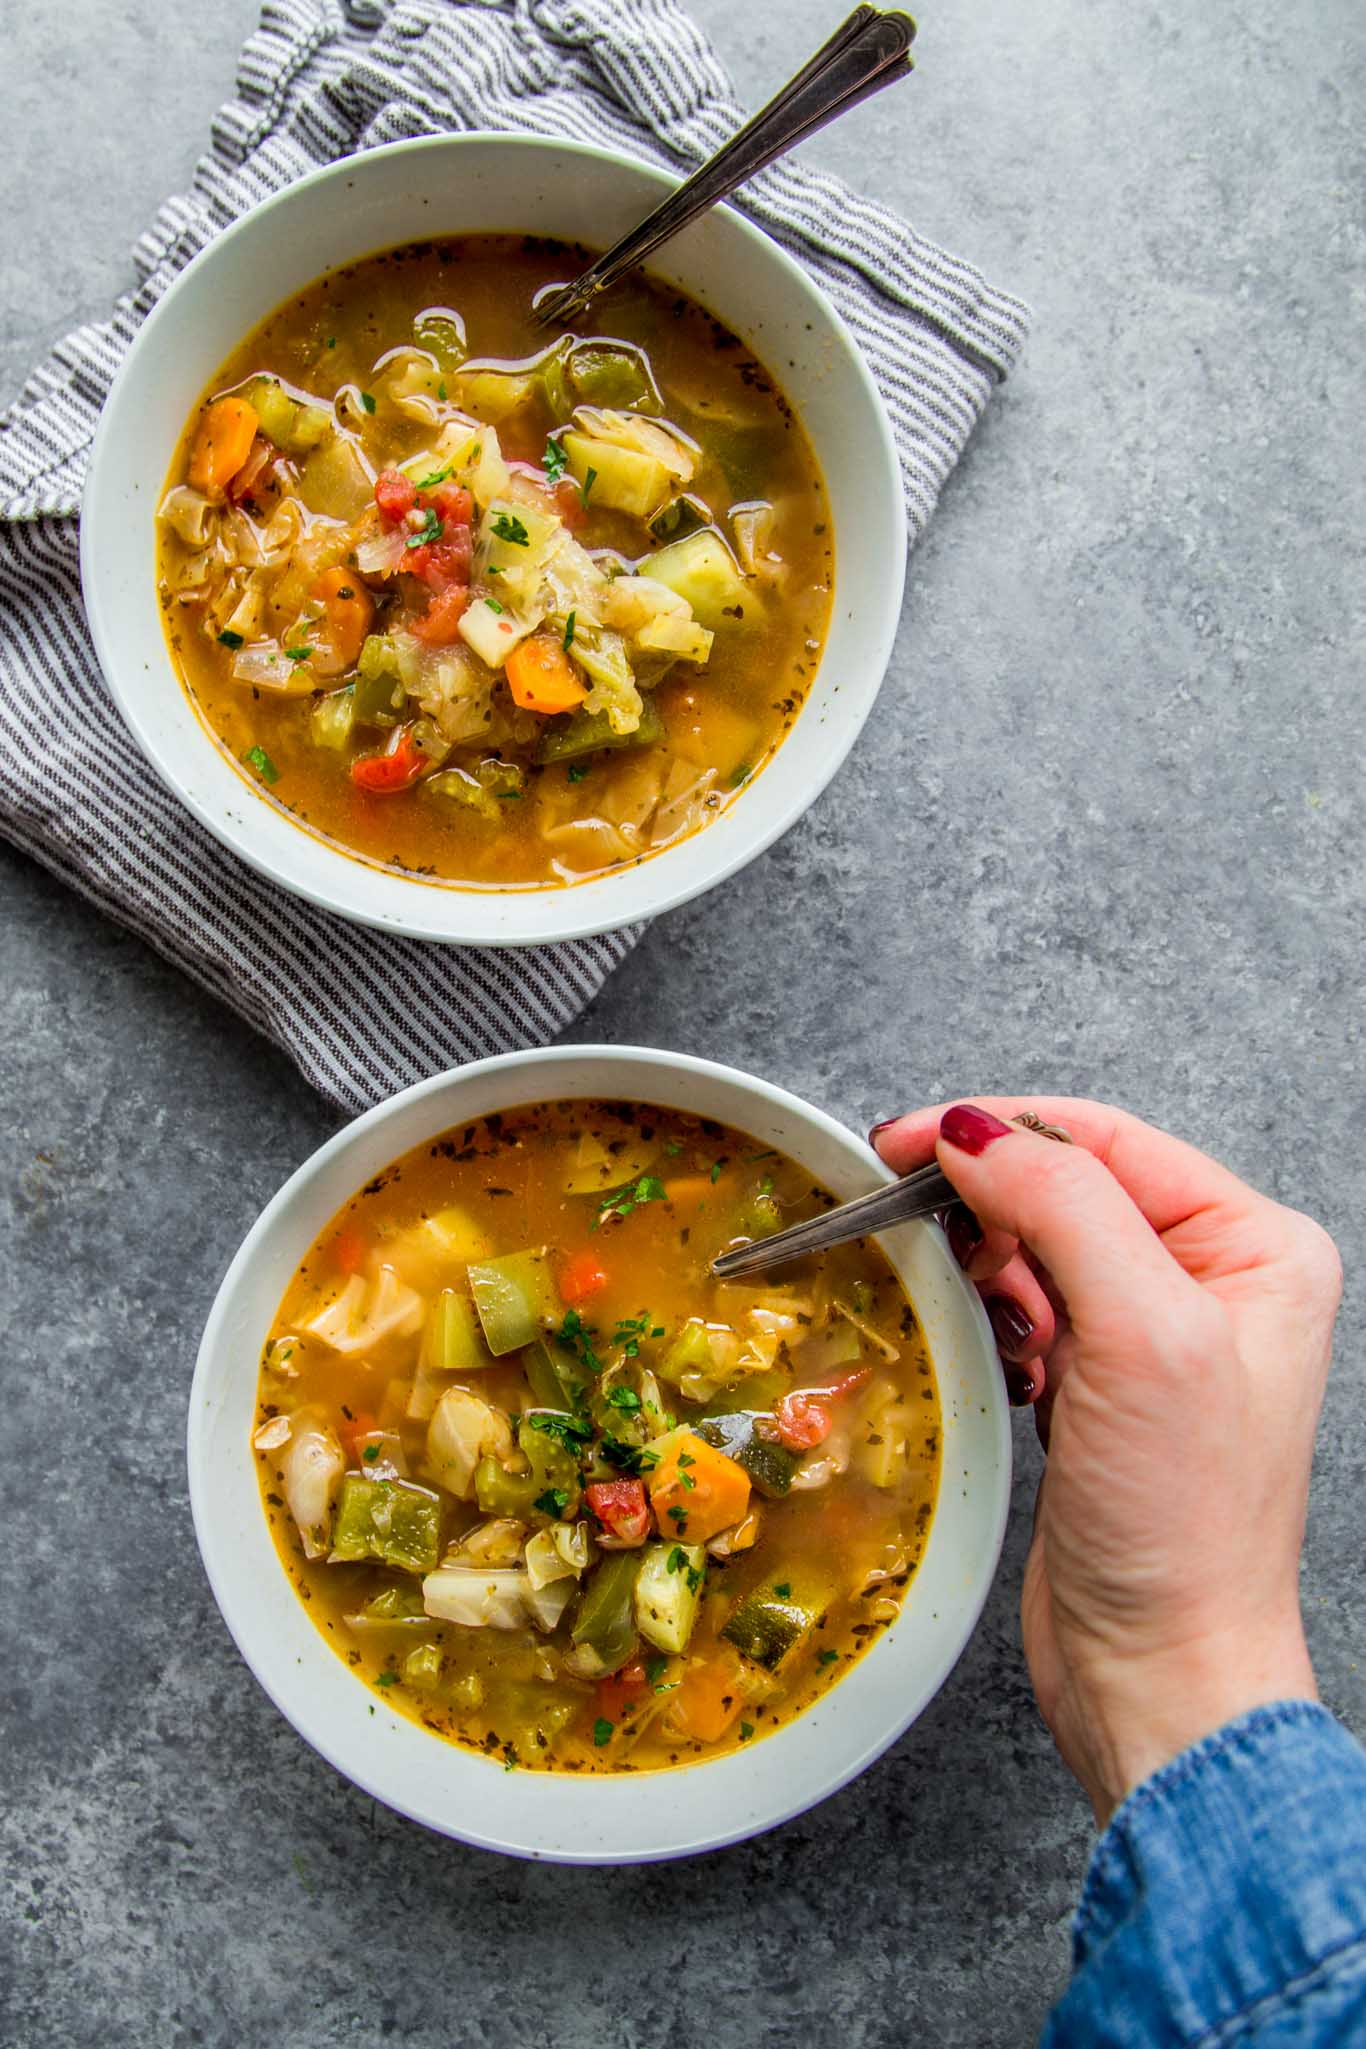 Two bowls of instant pot weight loss soup with hand eating.